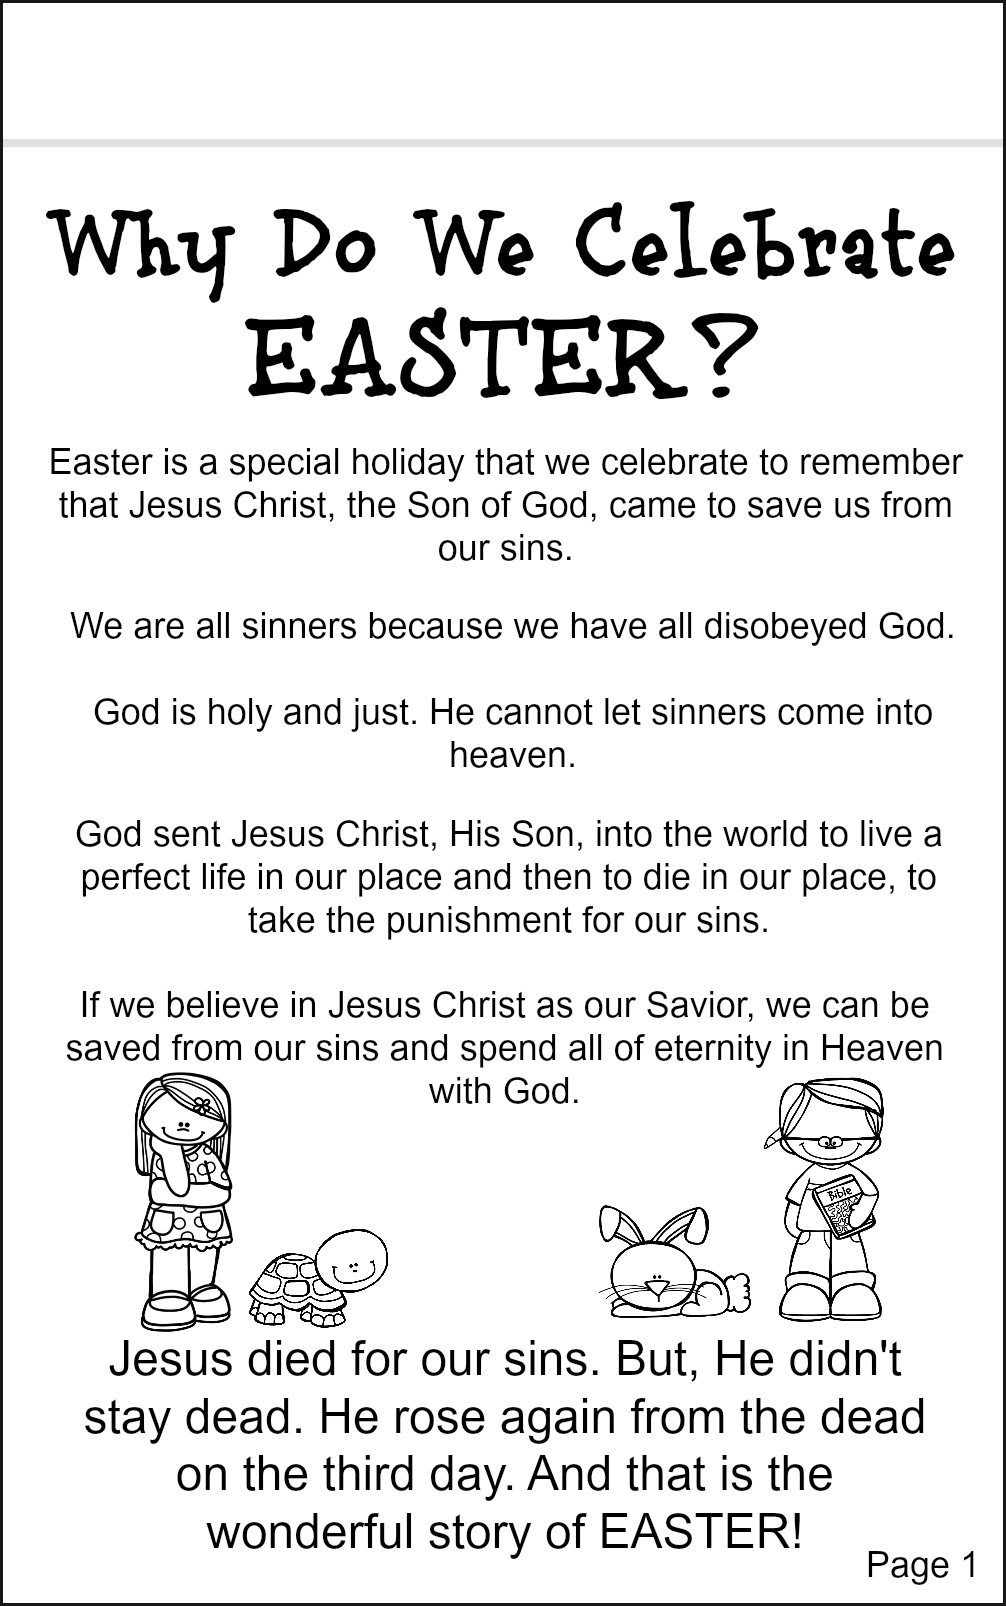 Easter Coloring Page Alleluia X additionally Number Worksheets Free besides Handprint Sun Craft X moreover Coloring Pages Of Number For Preschoolers in addition Pokemoncoloring Pages Coloring Colouring Cards Cute Pokemon Mega Evolution. on number 10 coloring page for preschoolers